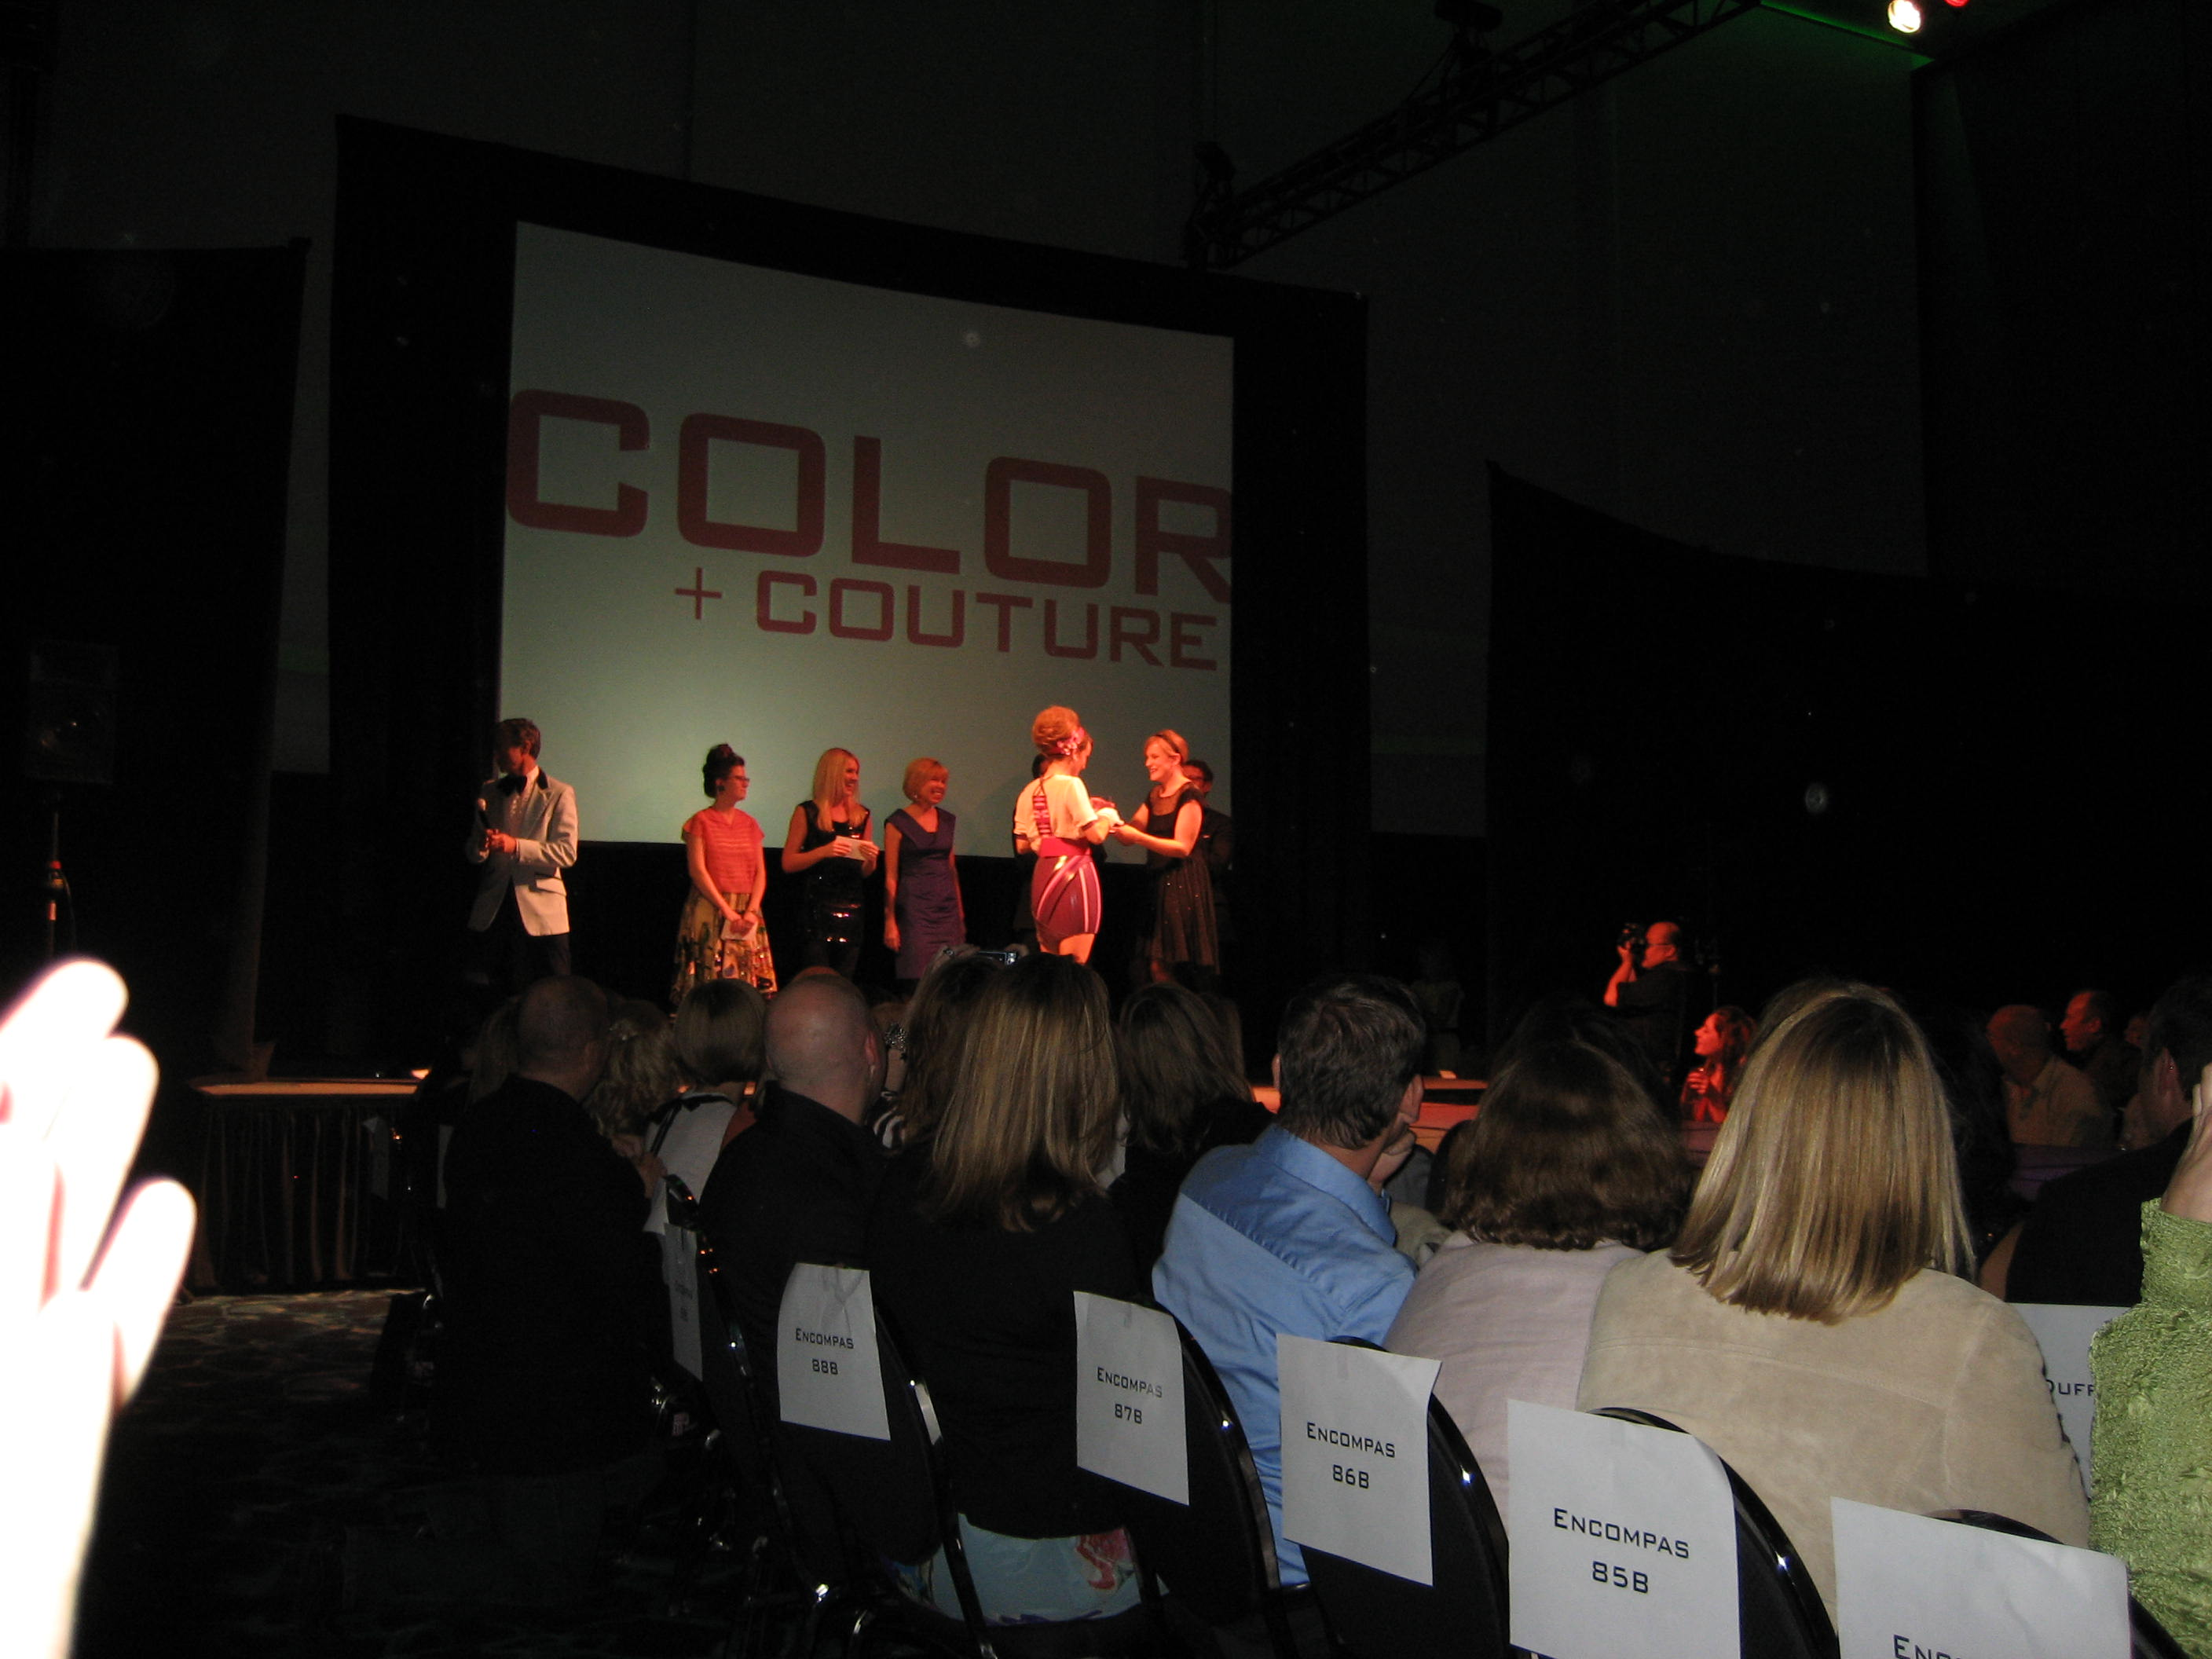 HWA brings home 2 awards from the IIDA Color+Couture Fashion Show